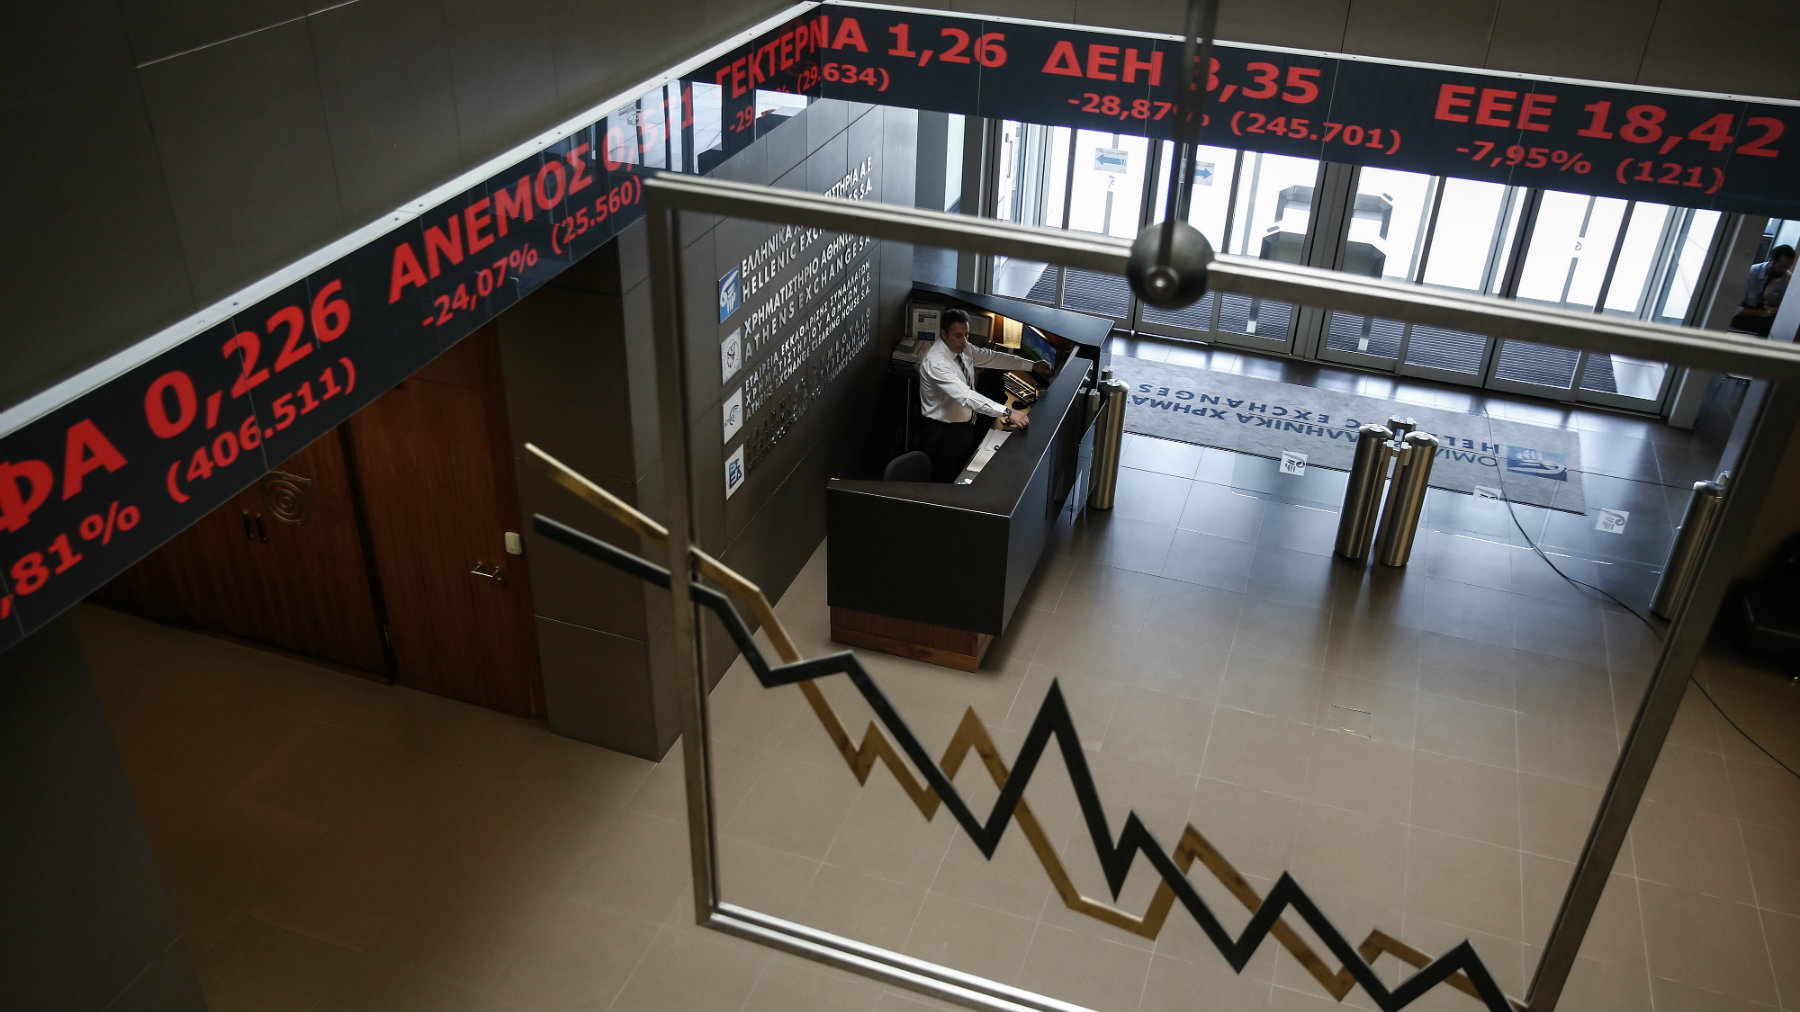 An employee of the Athens' Stock Exchange stands behind a reception desk in Athens, Greece, on Monday, Aug. 3, 2015. Greece's main stock index plunged over 22 percent as it reopened Monday after a five-week closure, giving investors their first opportunity since June to react to the country's latest economic crisis. (AP Photo/Yorgos Karahalis)